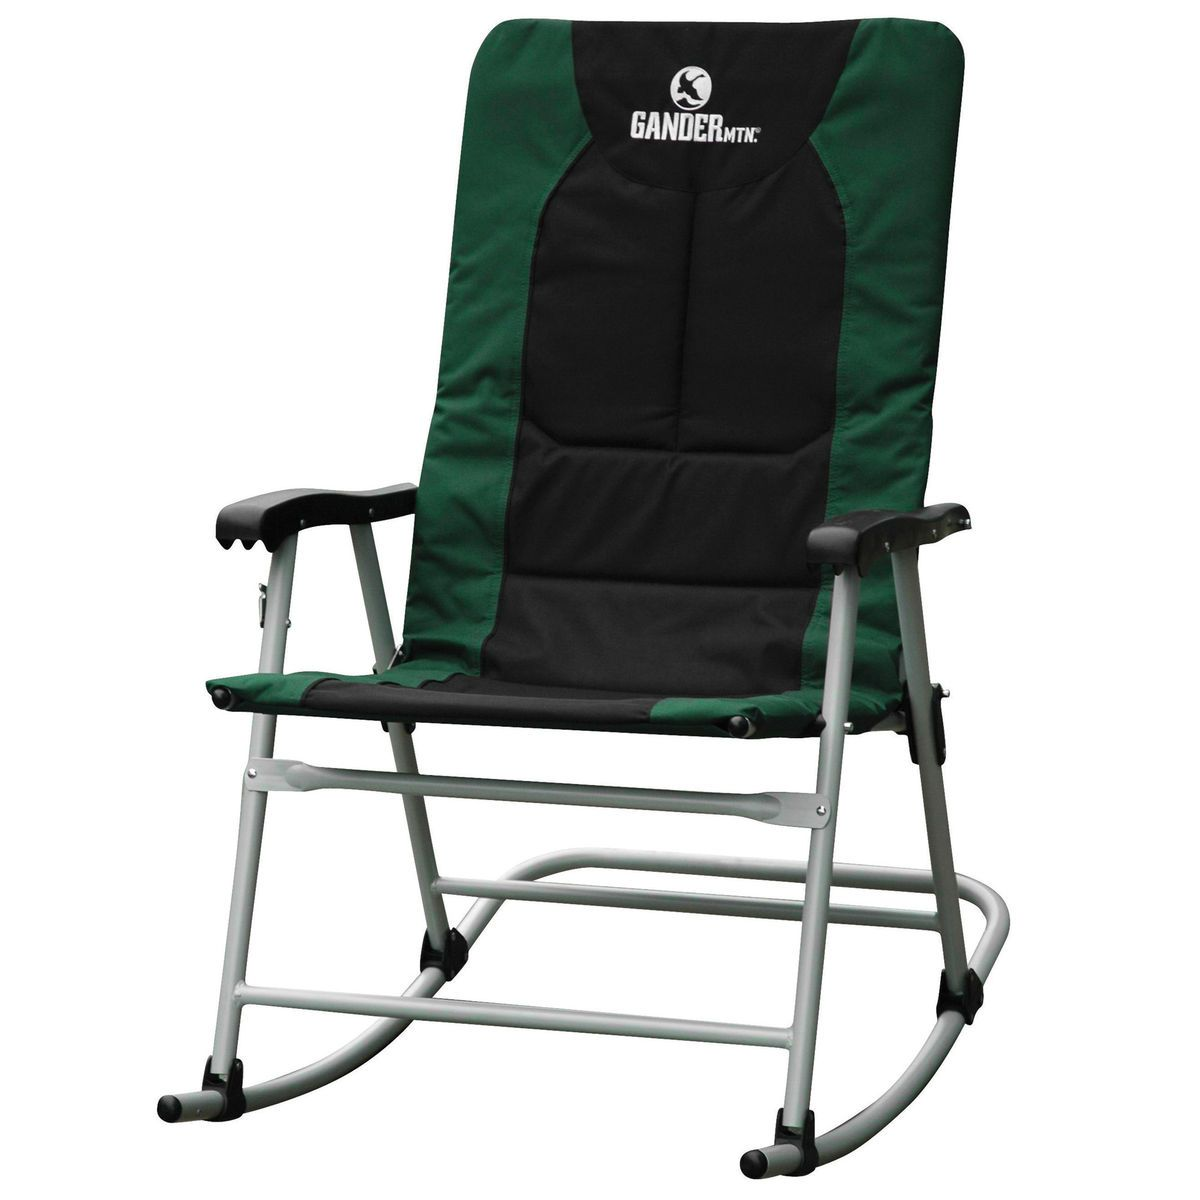 Pleasant Gander Mountain Rocking Quad Chair Hunter Green 760905 Andrewgaddart Wooden Chair Designs For Living Room Andrewgaddartcom